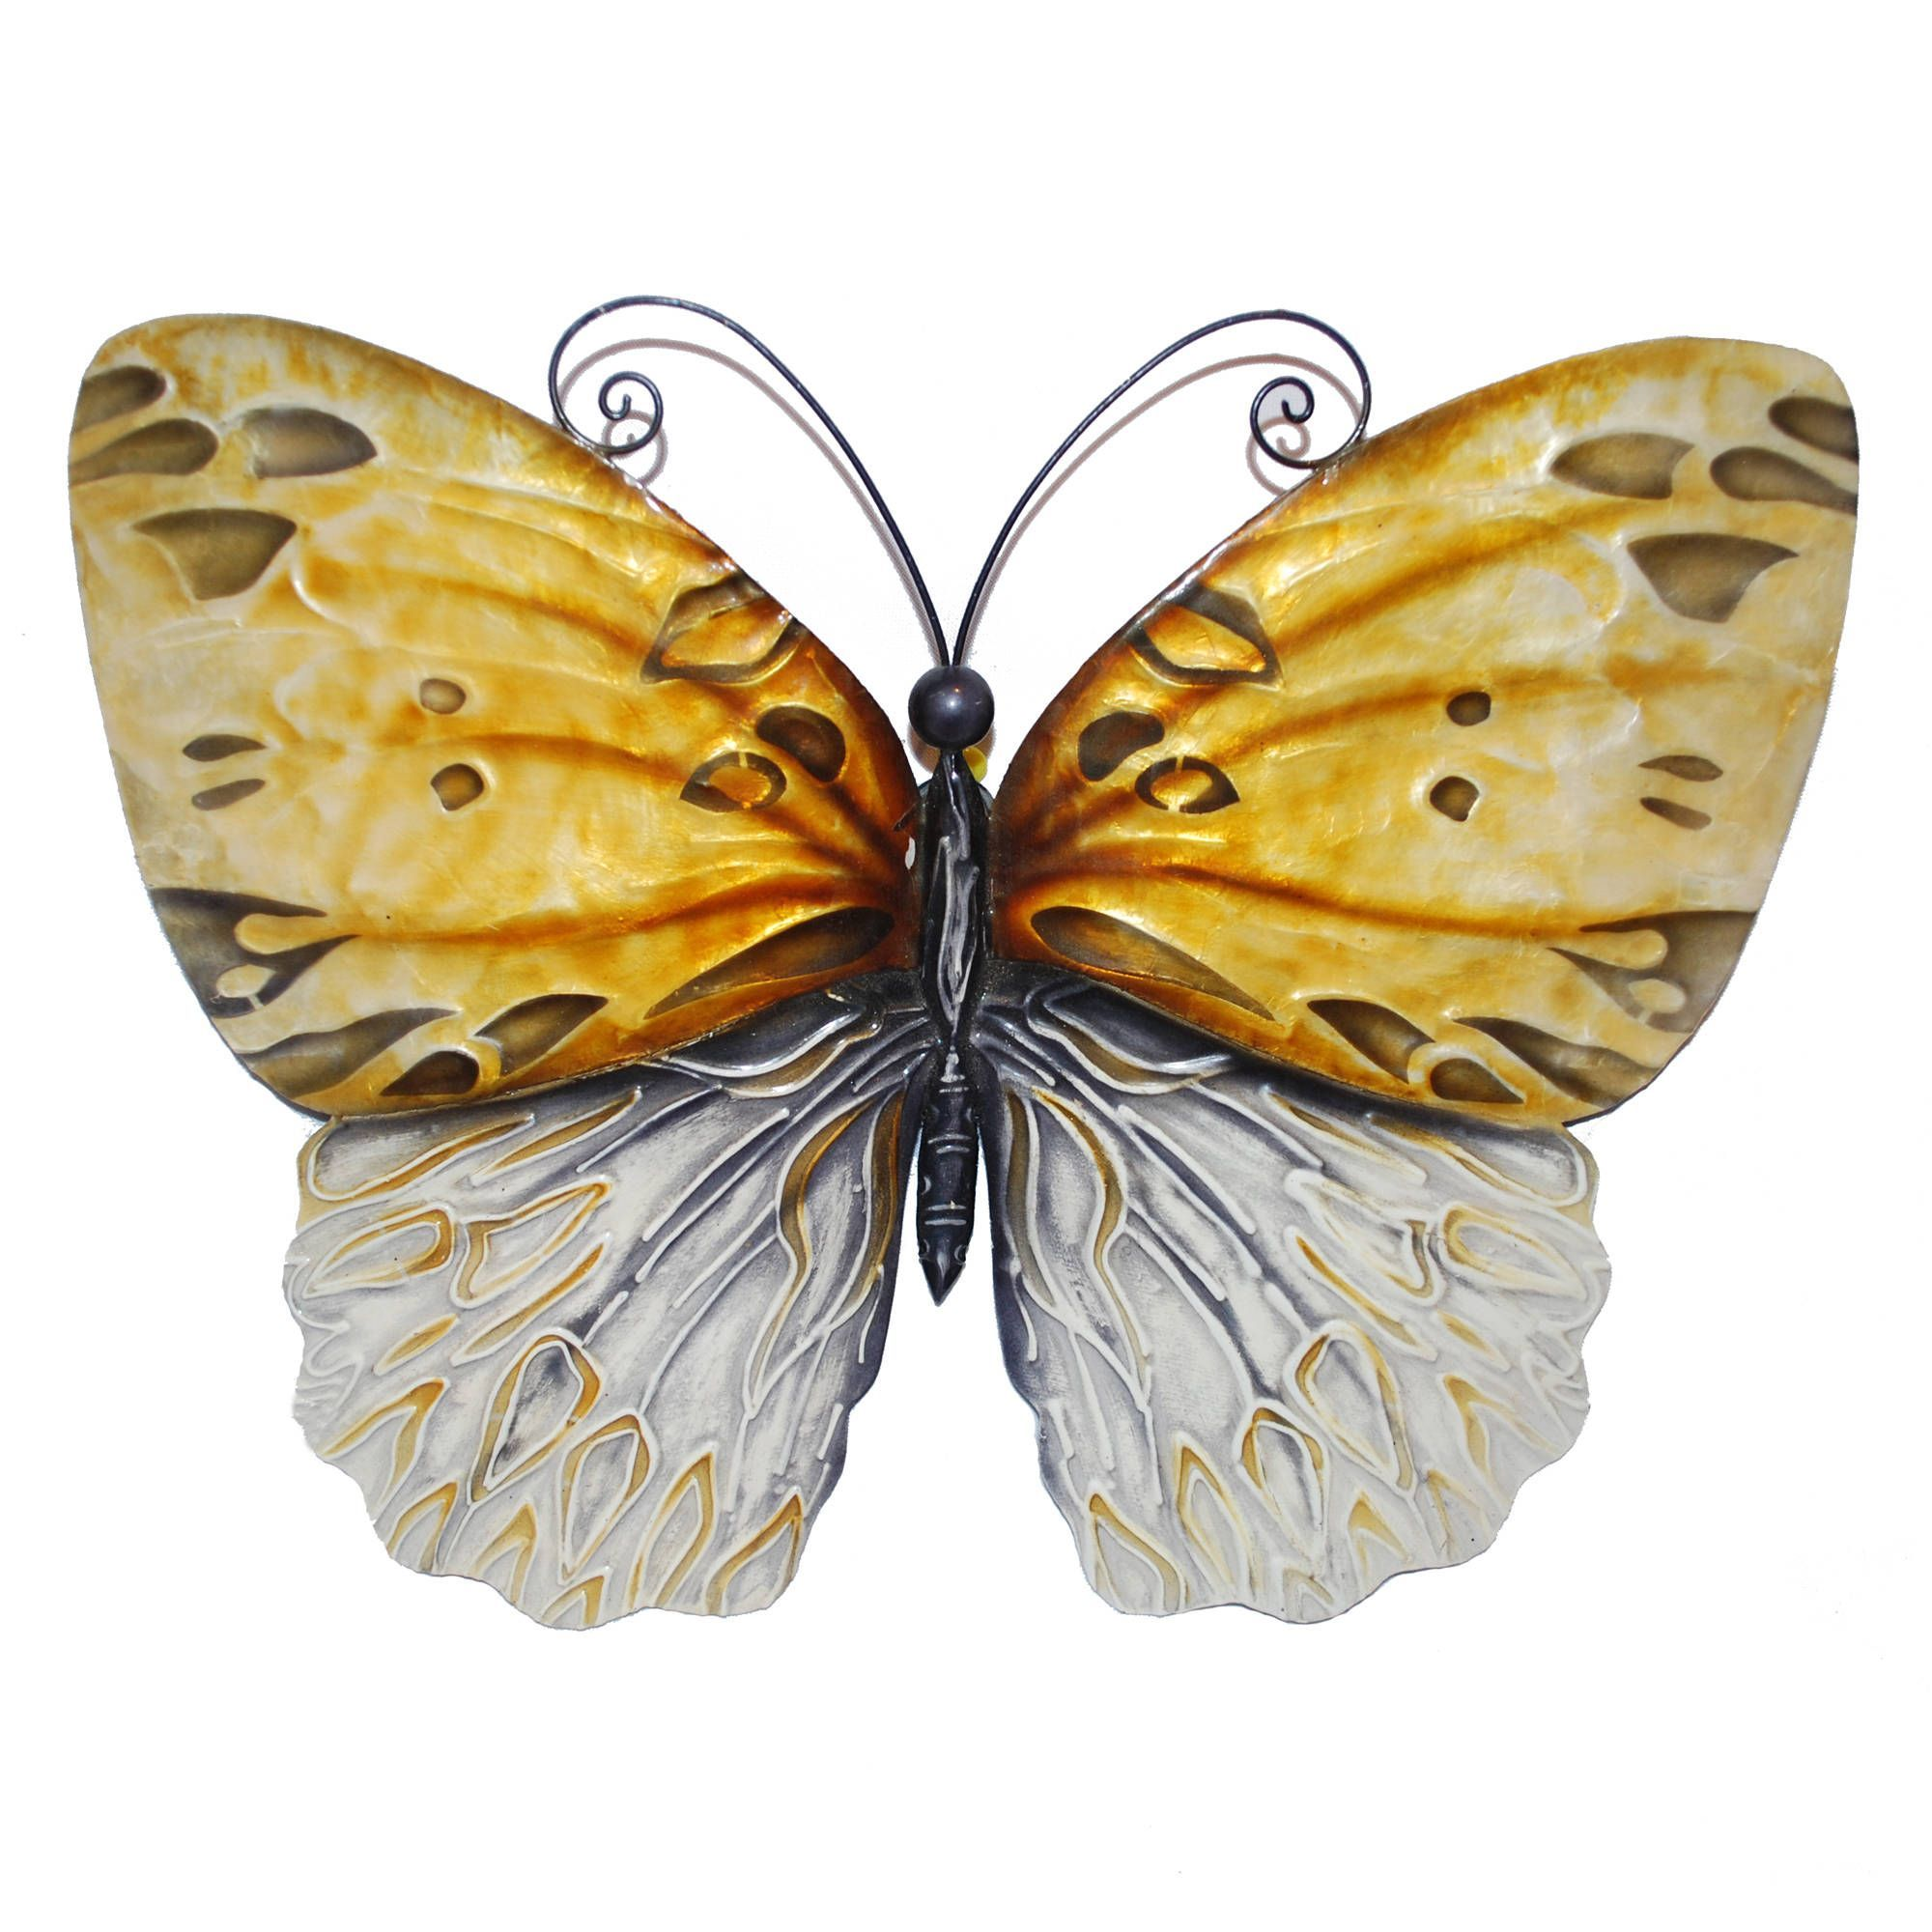 Eangee handpainted honey metal butterfly wall art philippines